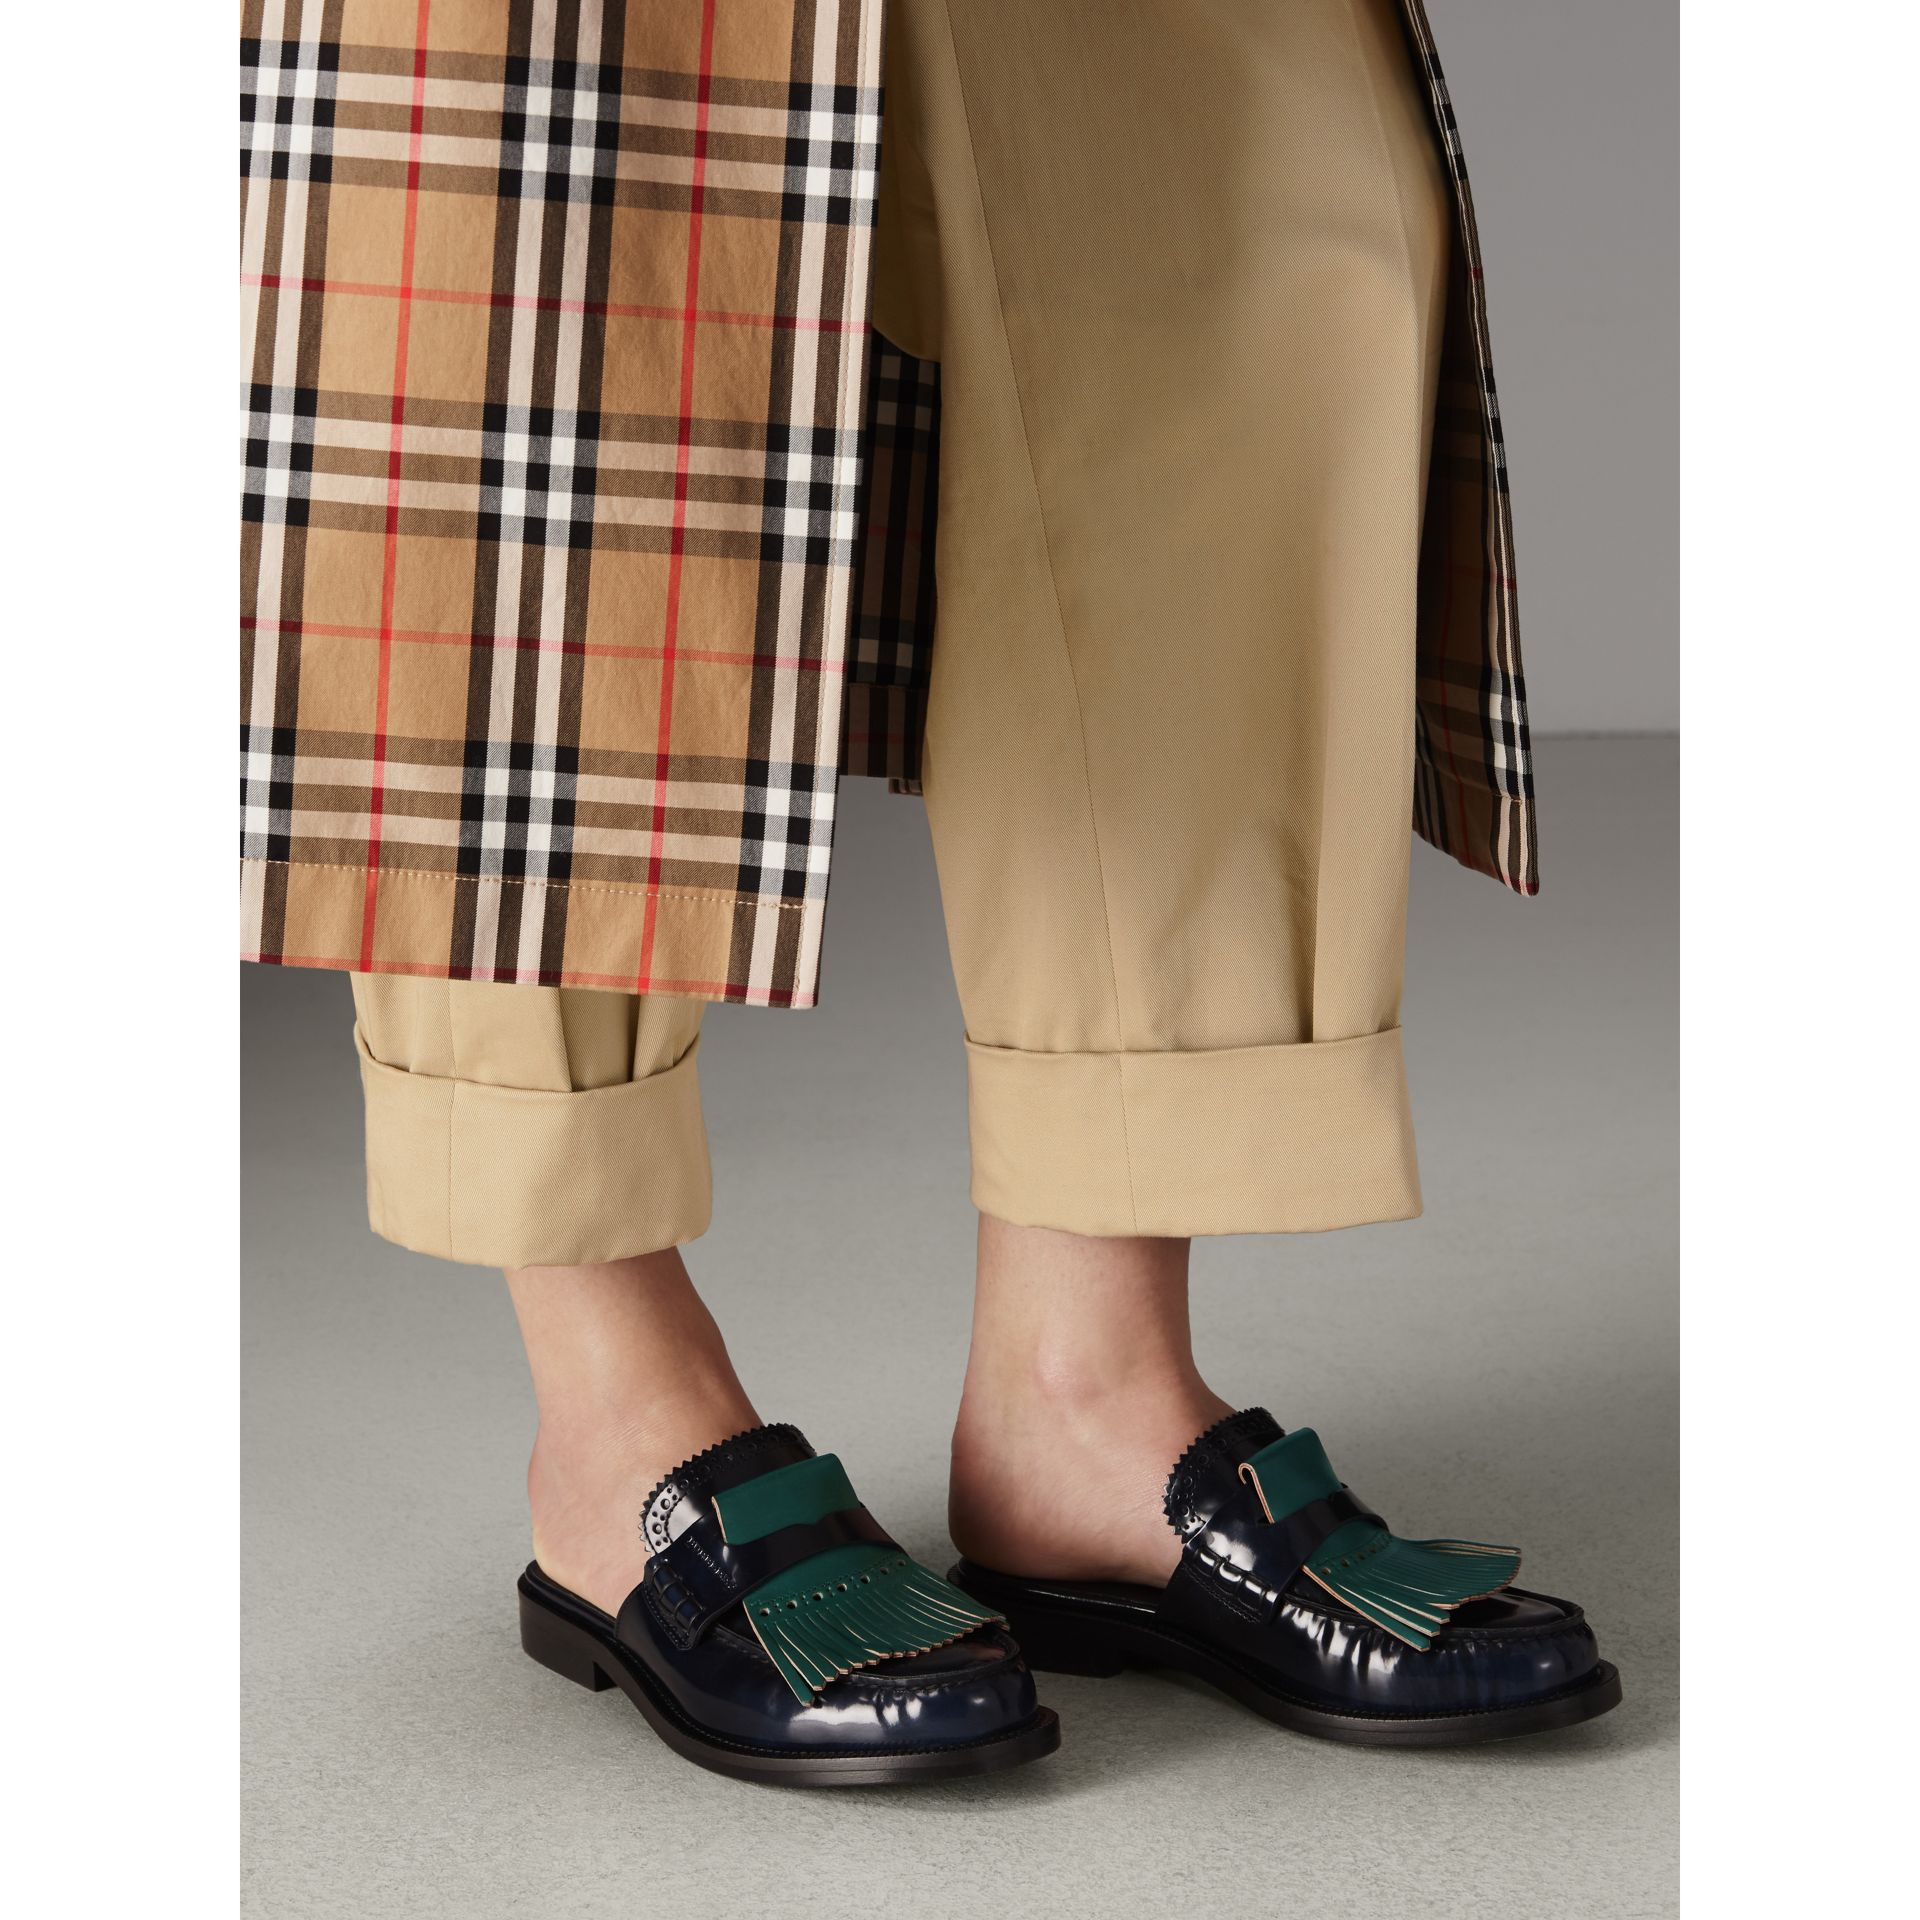 Contrast Kiltie Fringe Leather Mules in Navy - Women | Burberry United States - gallery image 2